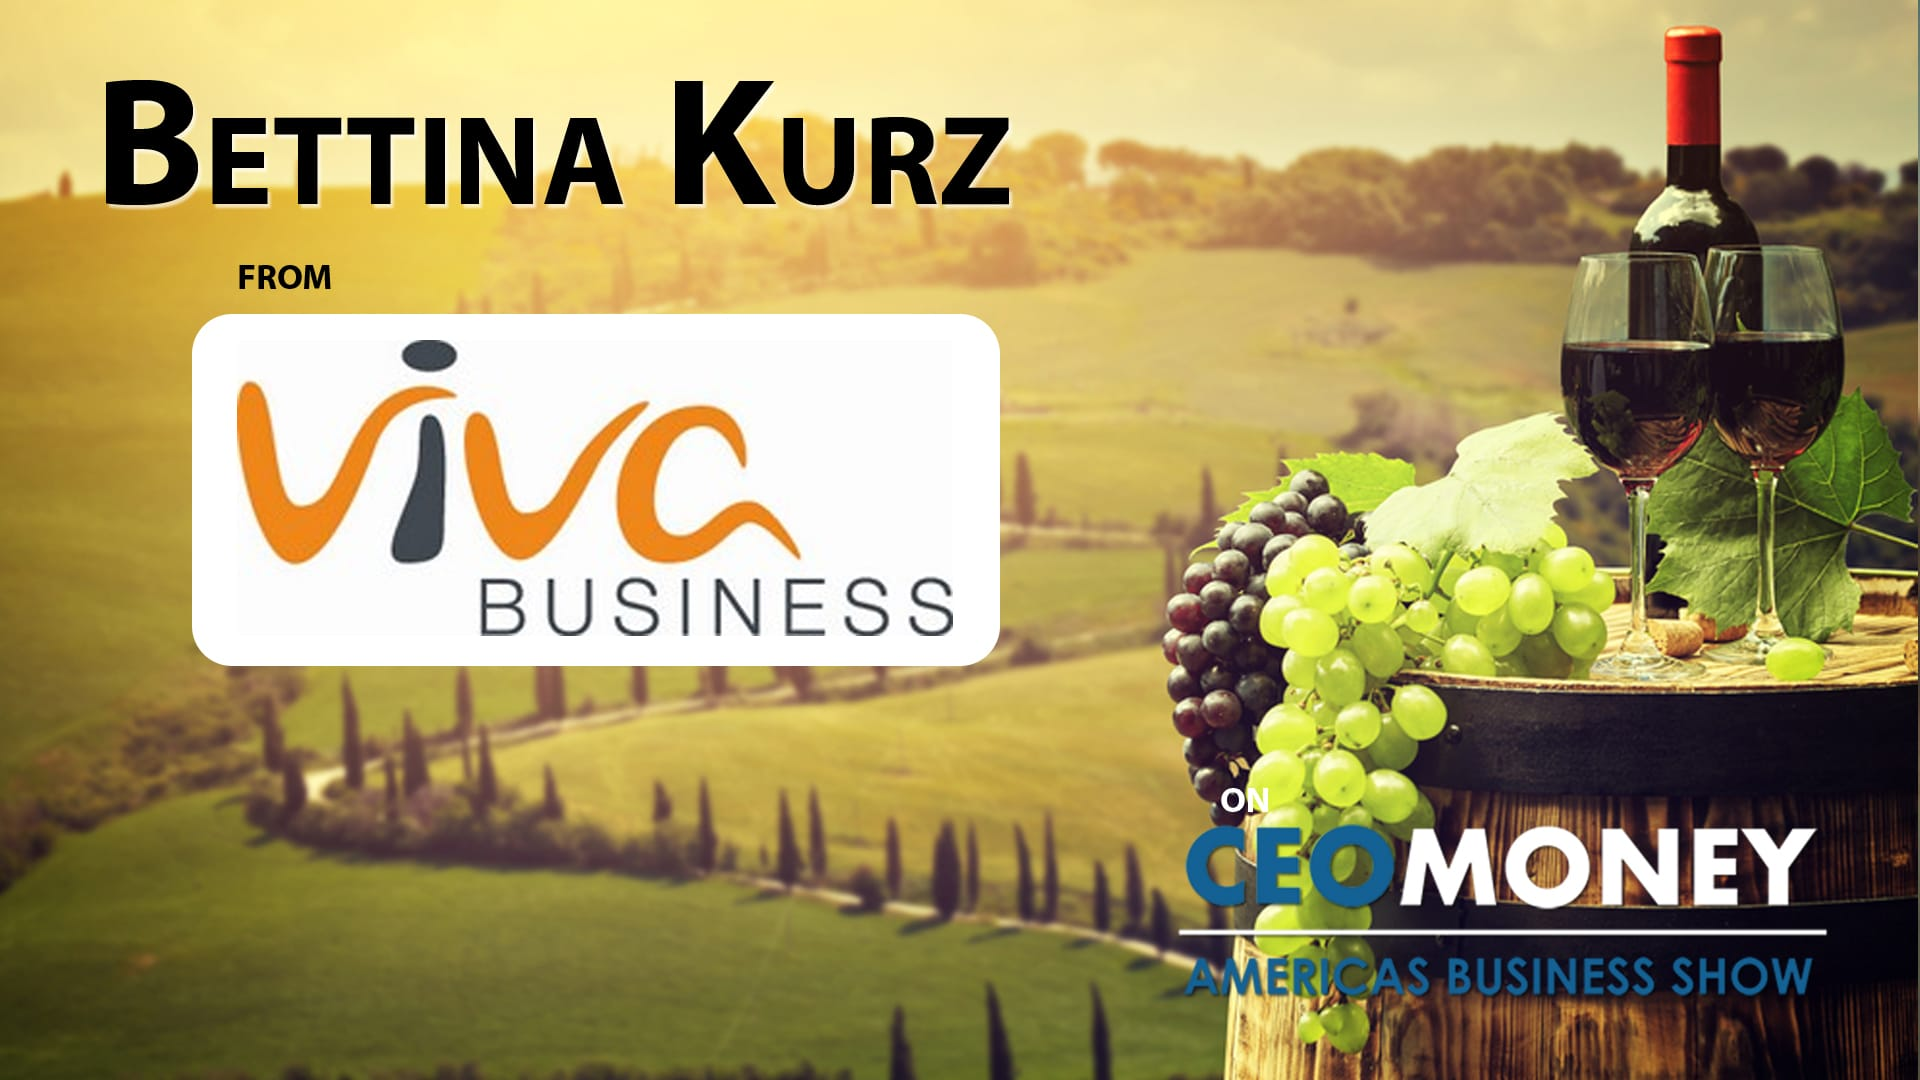 Bettina Kurz from Viva Business facilitates buying wineries as an alternative investment